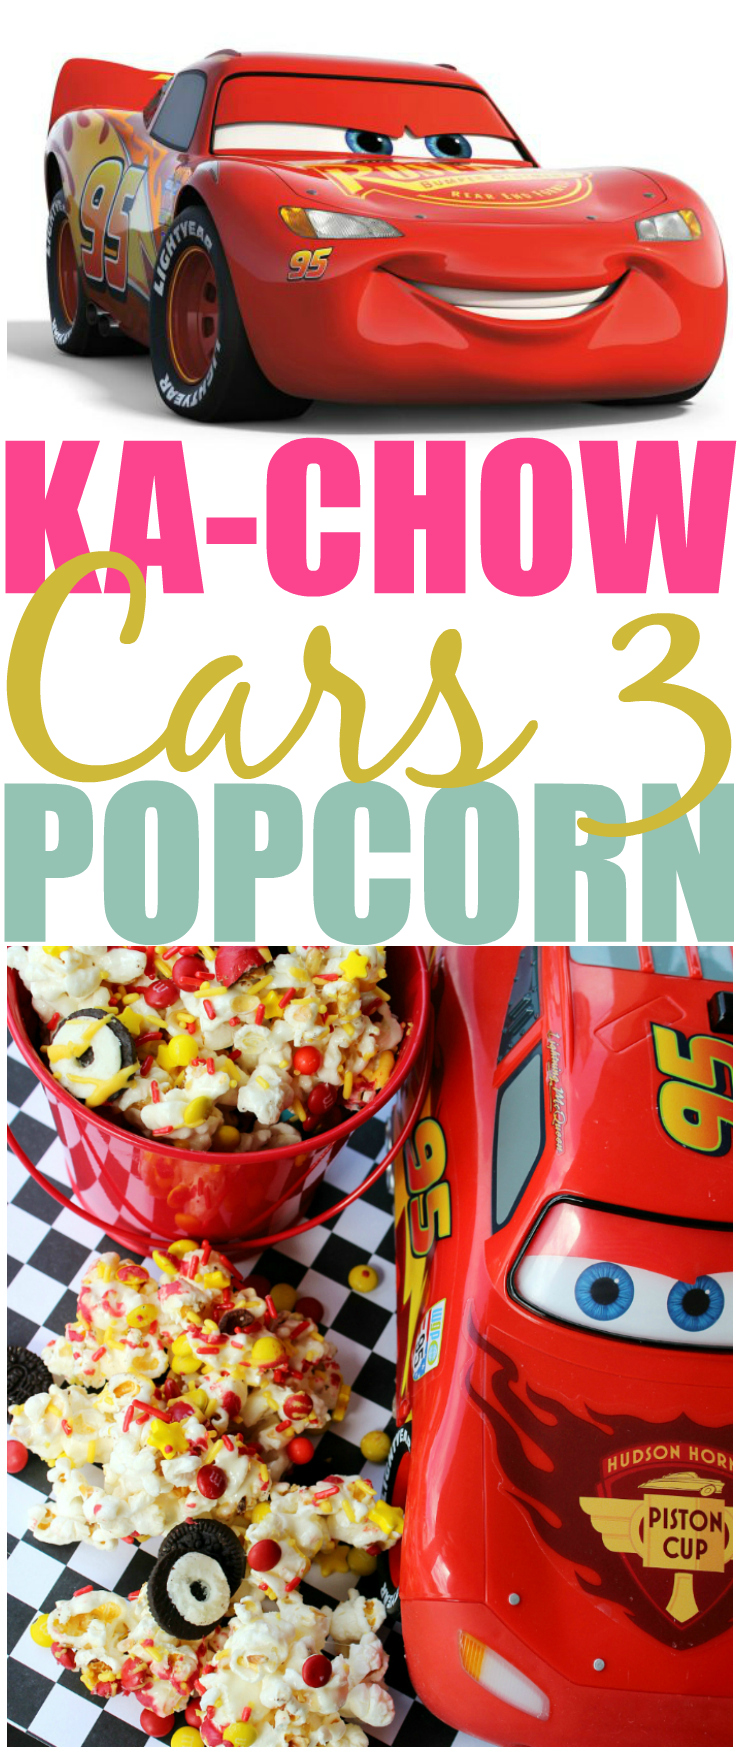 Ka-Chow Cars 3 Popcorn Recipe